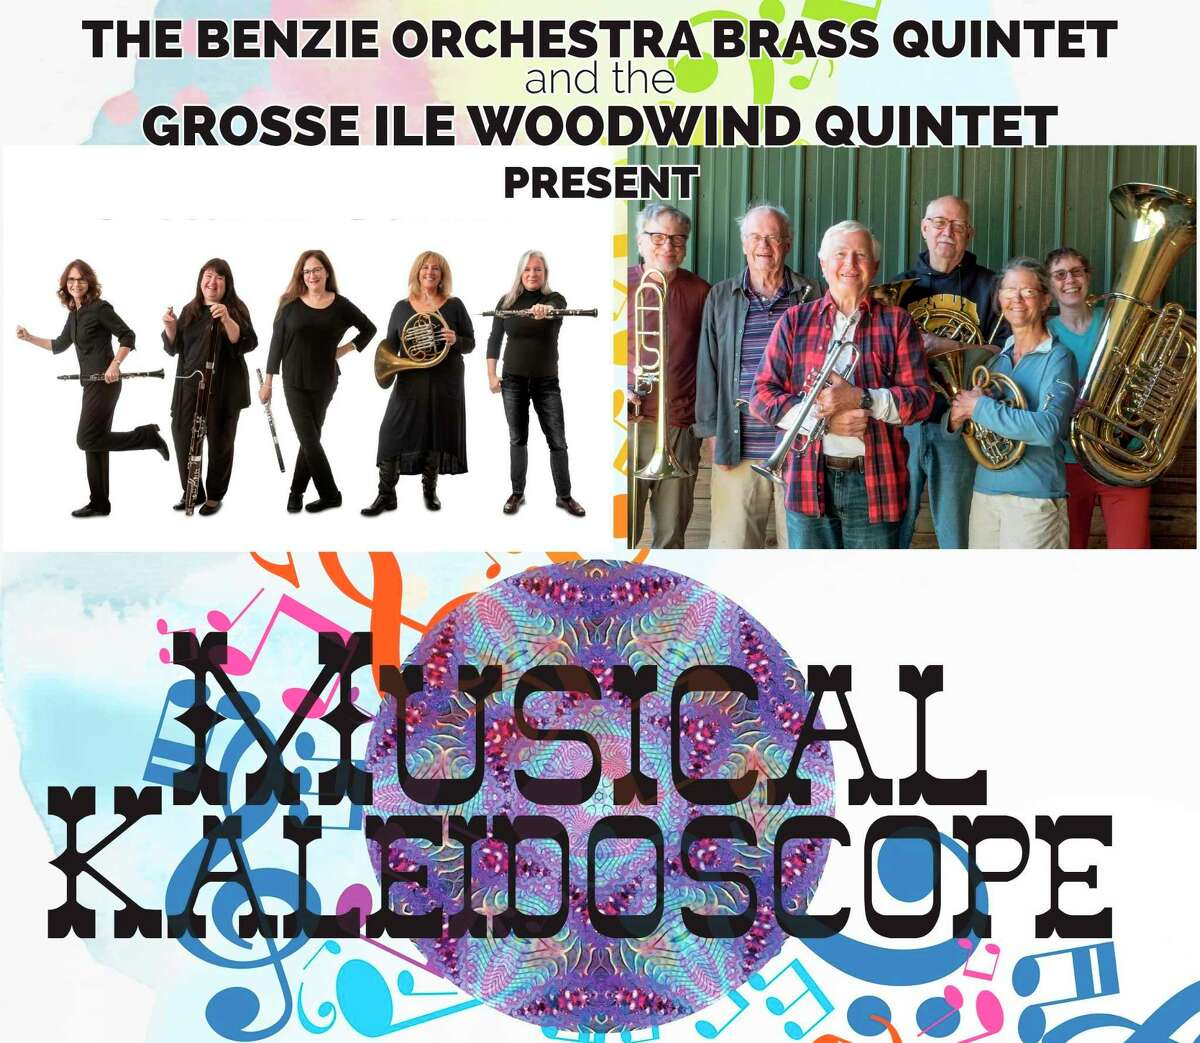 The brass quartet from the Benzie Area Symphony Orchestra will be performing with theGrosse Ile Quintet on Aug. 8. (Courtesy Photo)